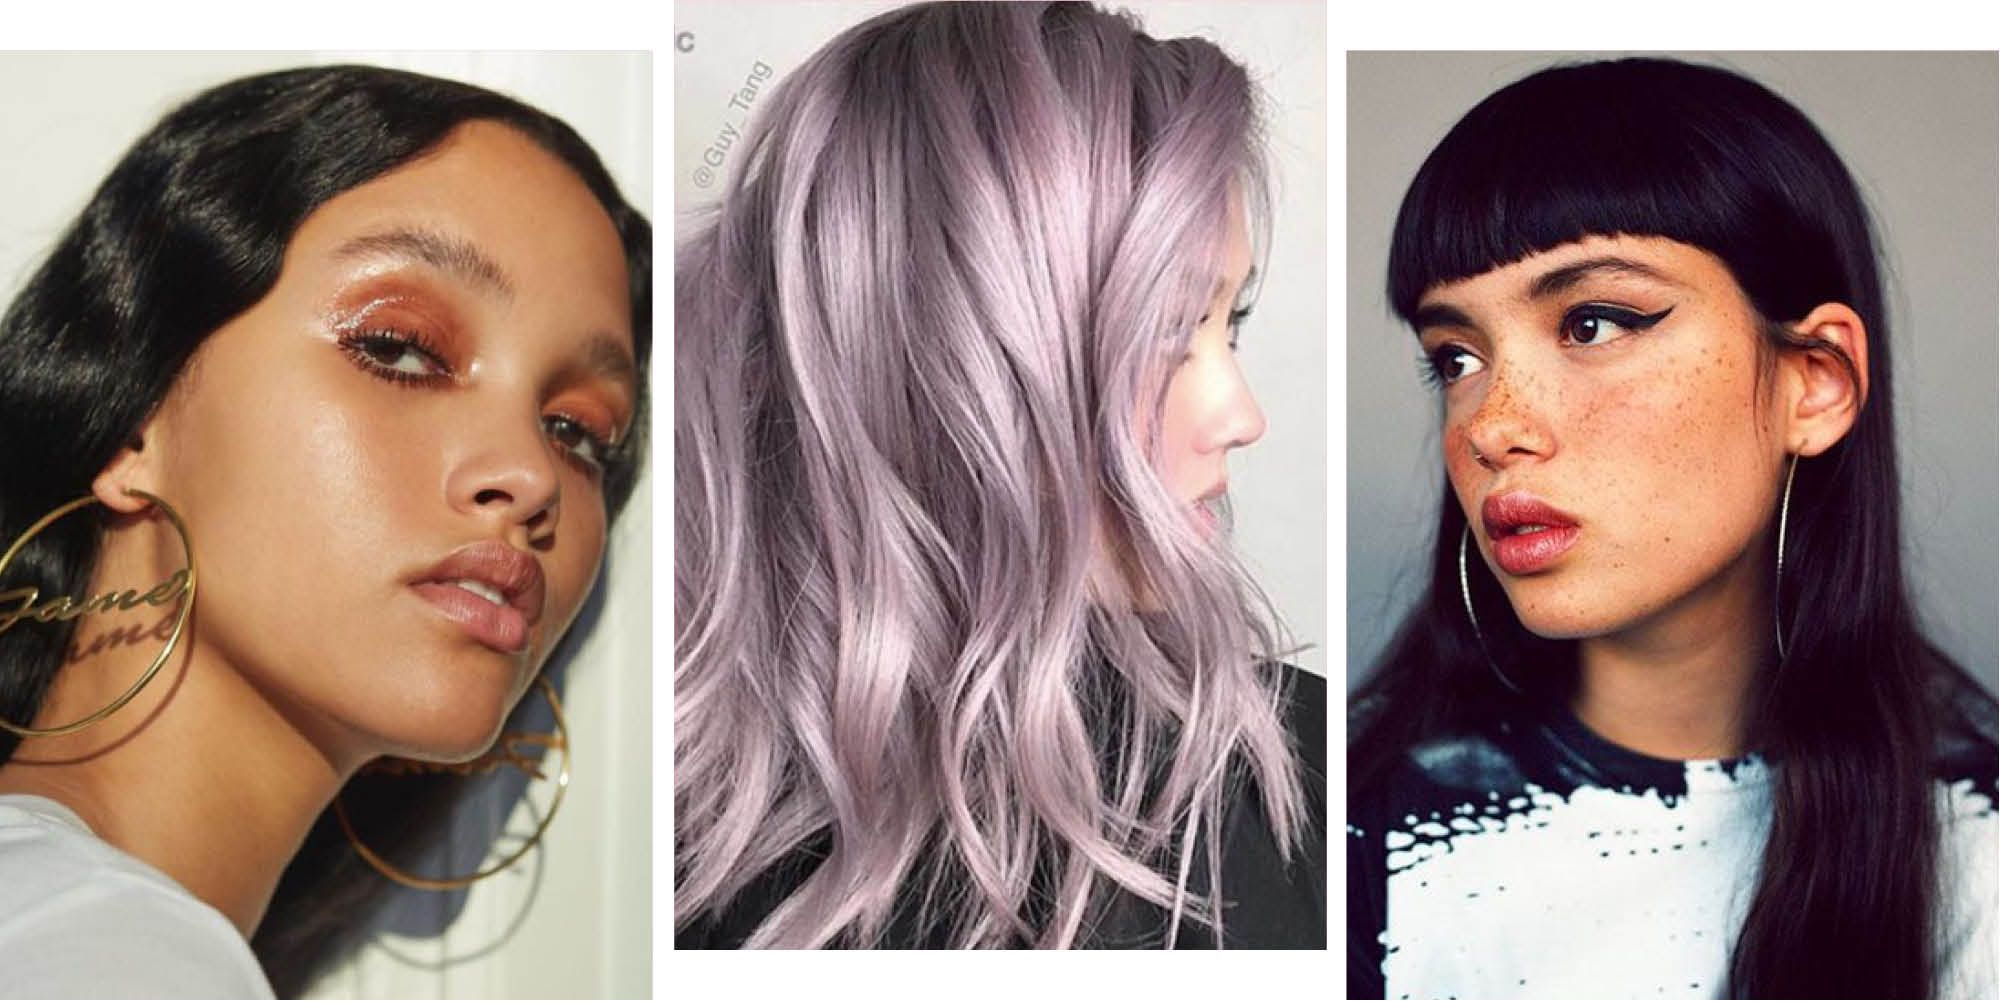 Hair Style Trends For 2019: The 10 Biggest Beauty Trends